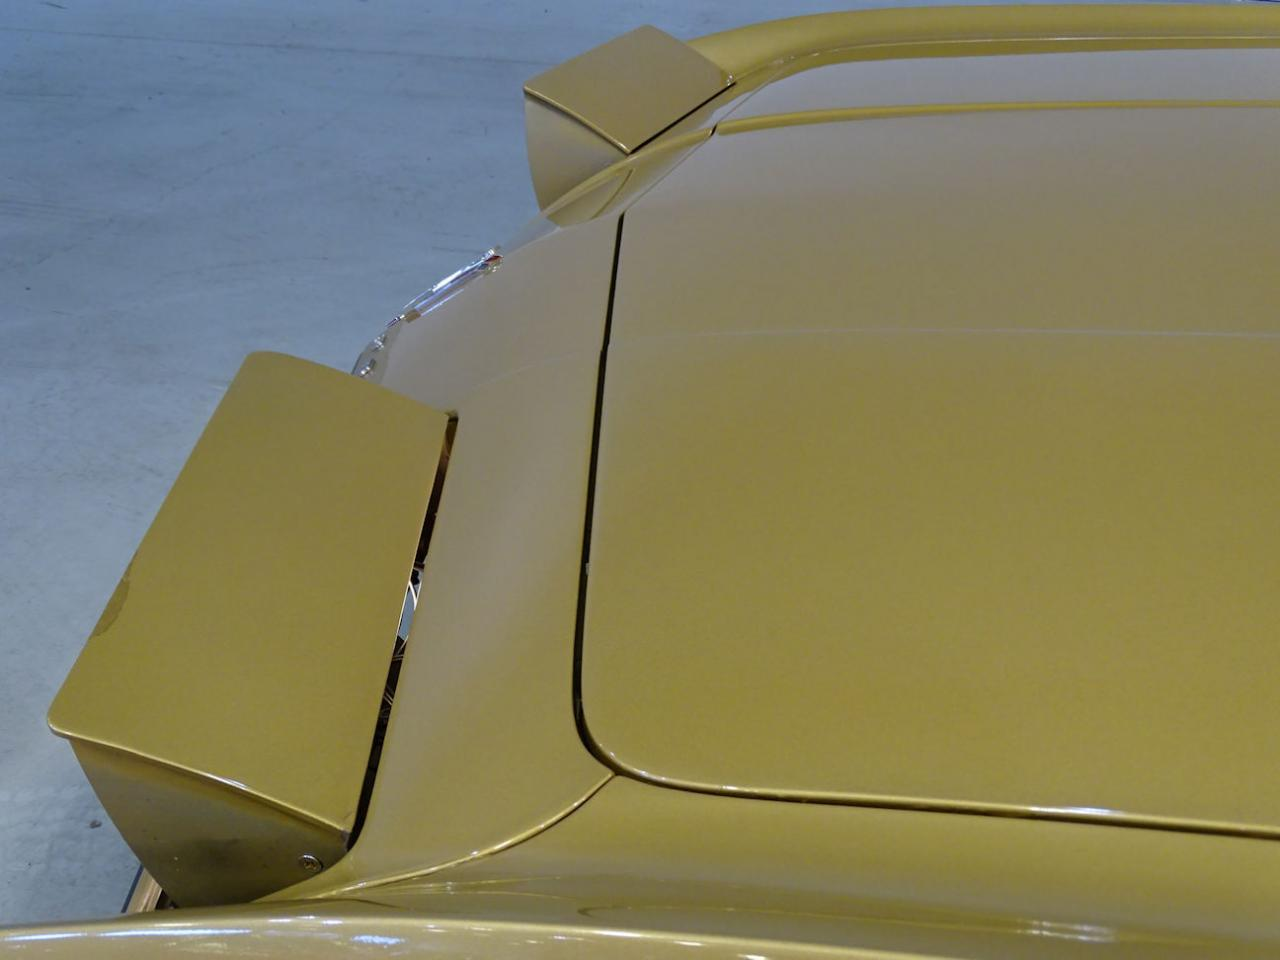 Large Picture of 1966 Toronado located in Lake Mary Florida - $9,995.00 Offered by Gateway Classic Cars - Orlando - L87I